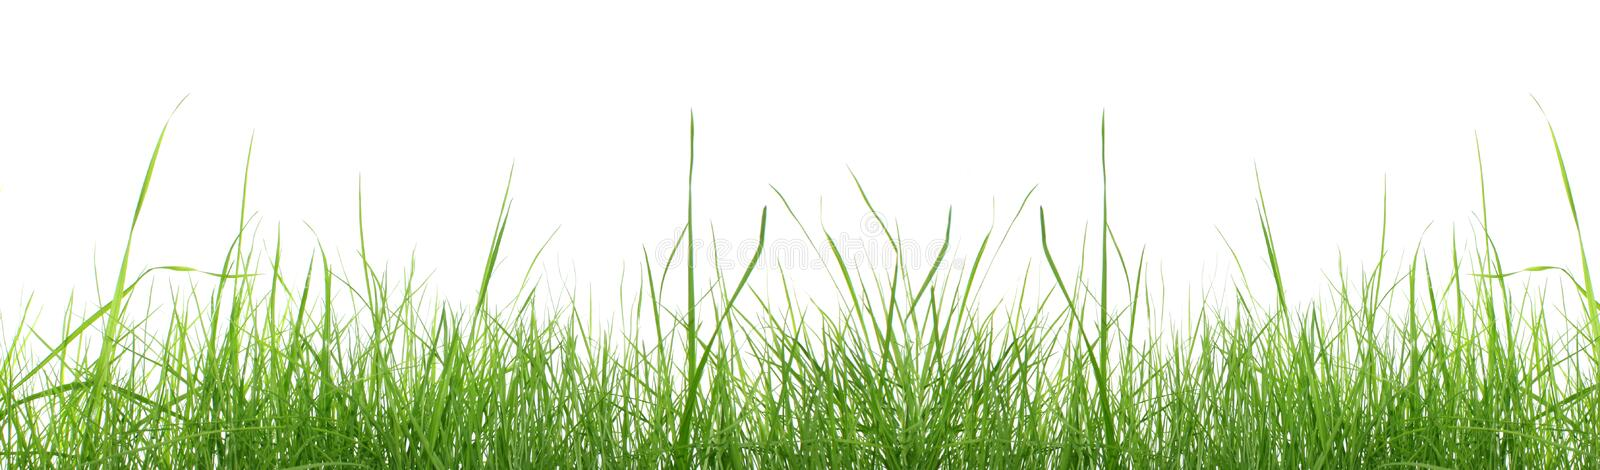 Green grass isolated. stock image